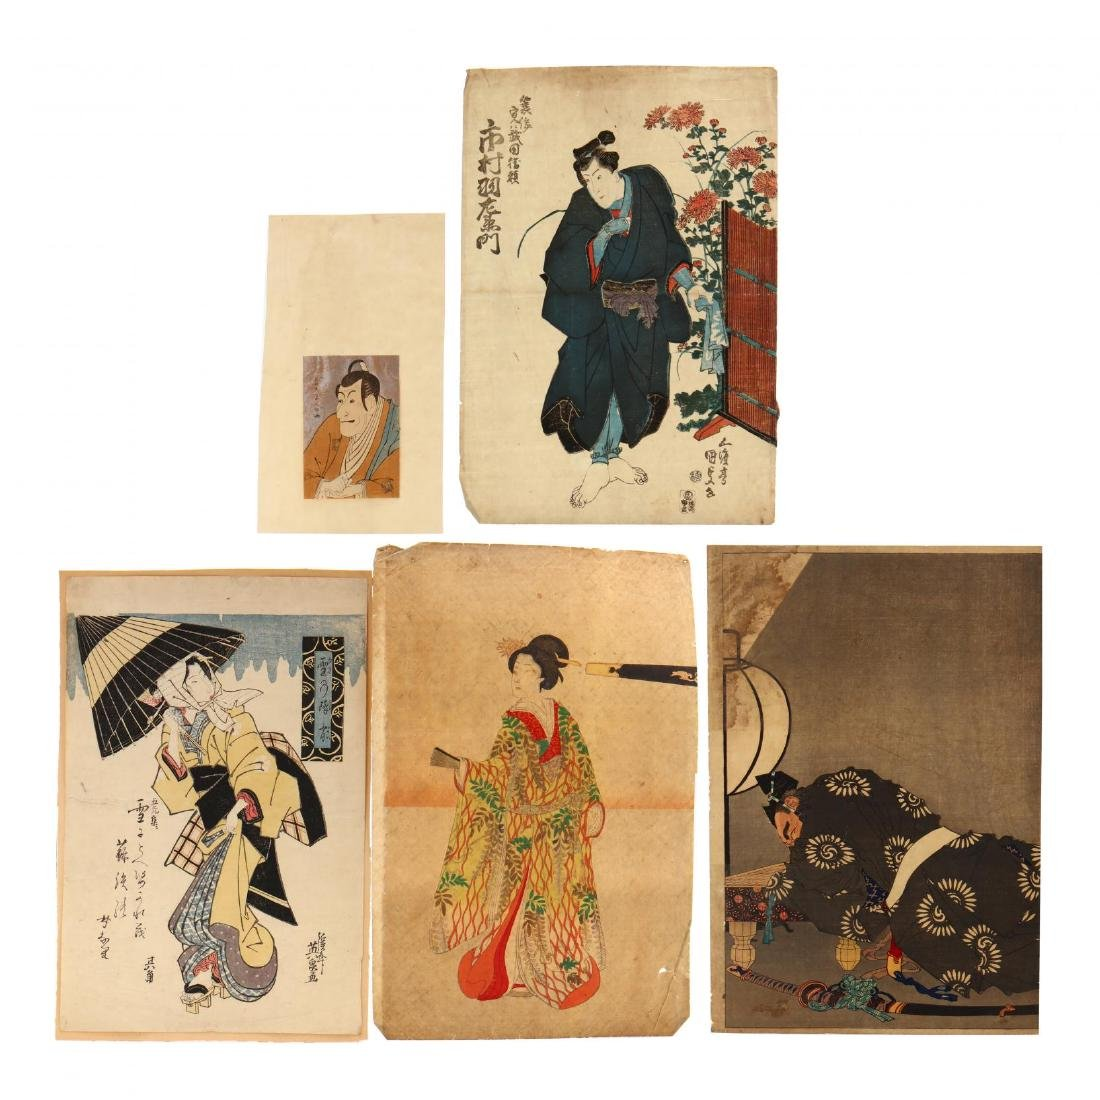 A Group of Japanese Woodblock Prints